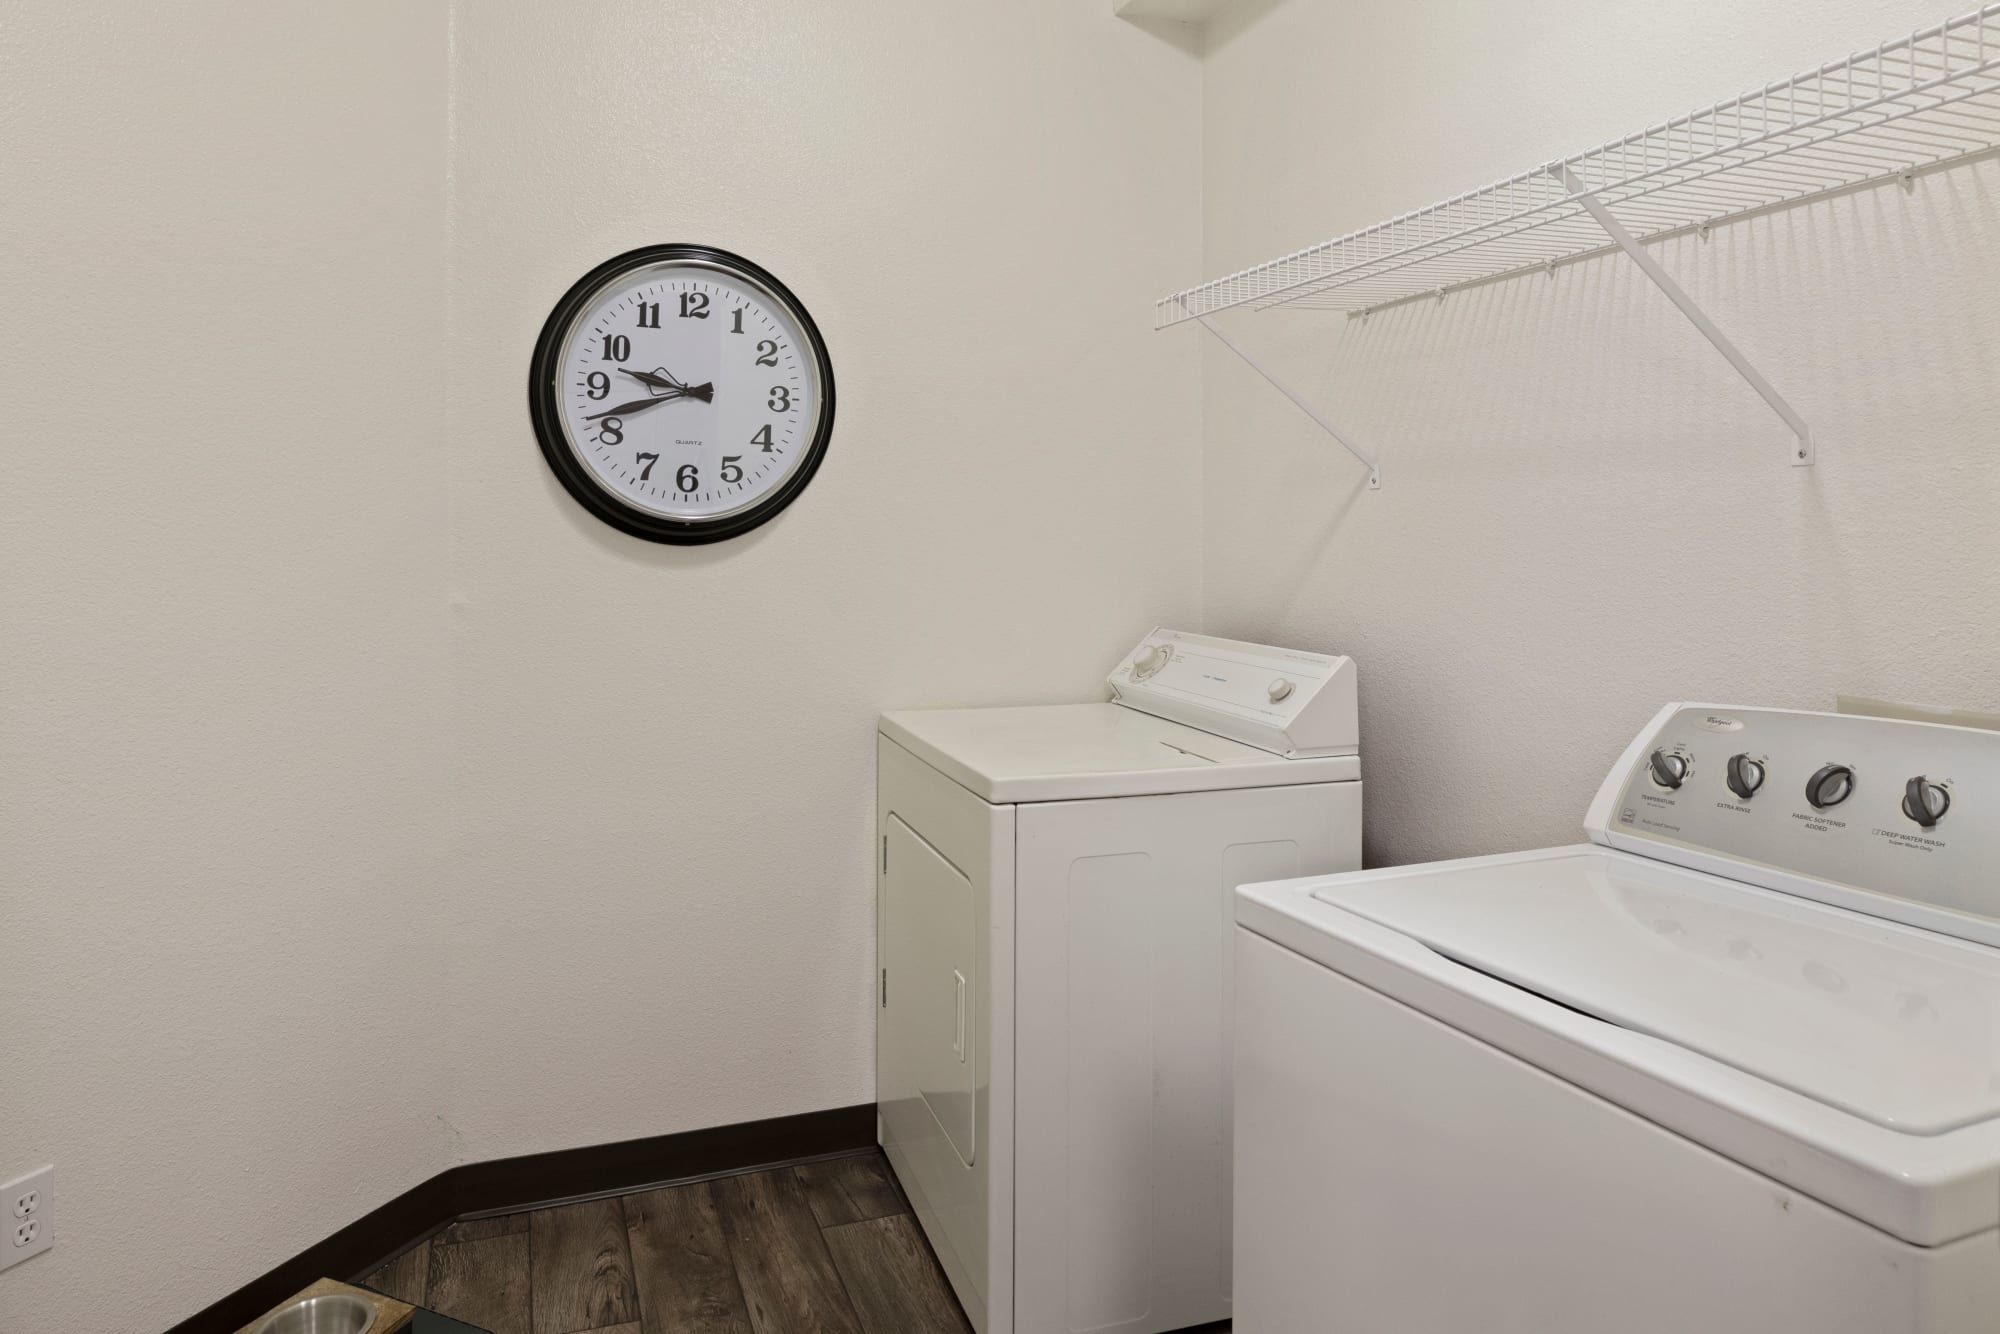 Full-sized Washer & Dryer at